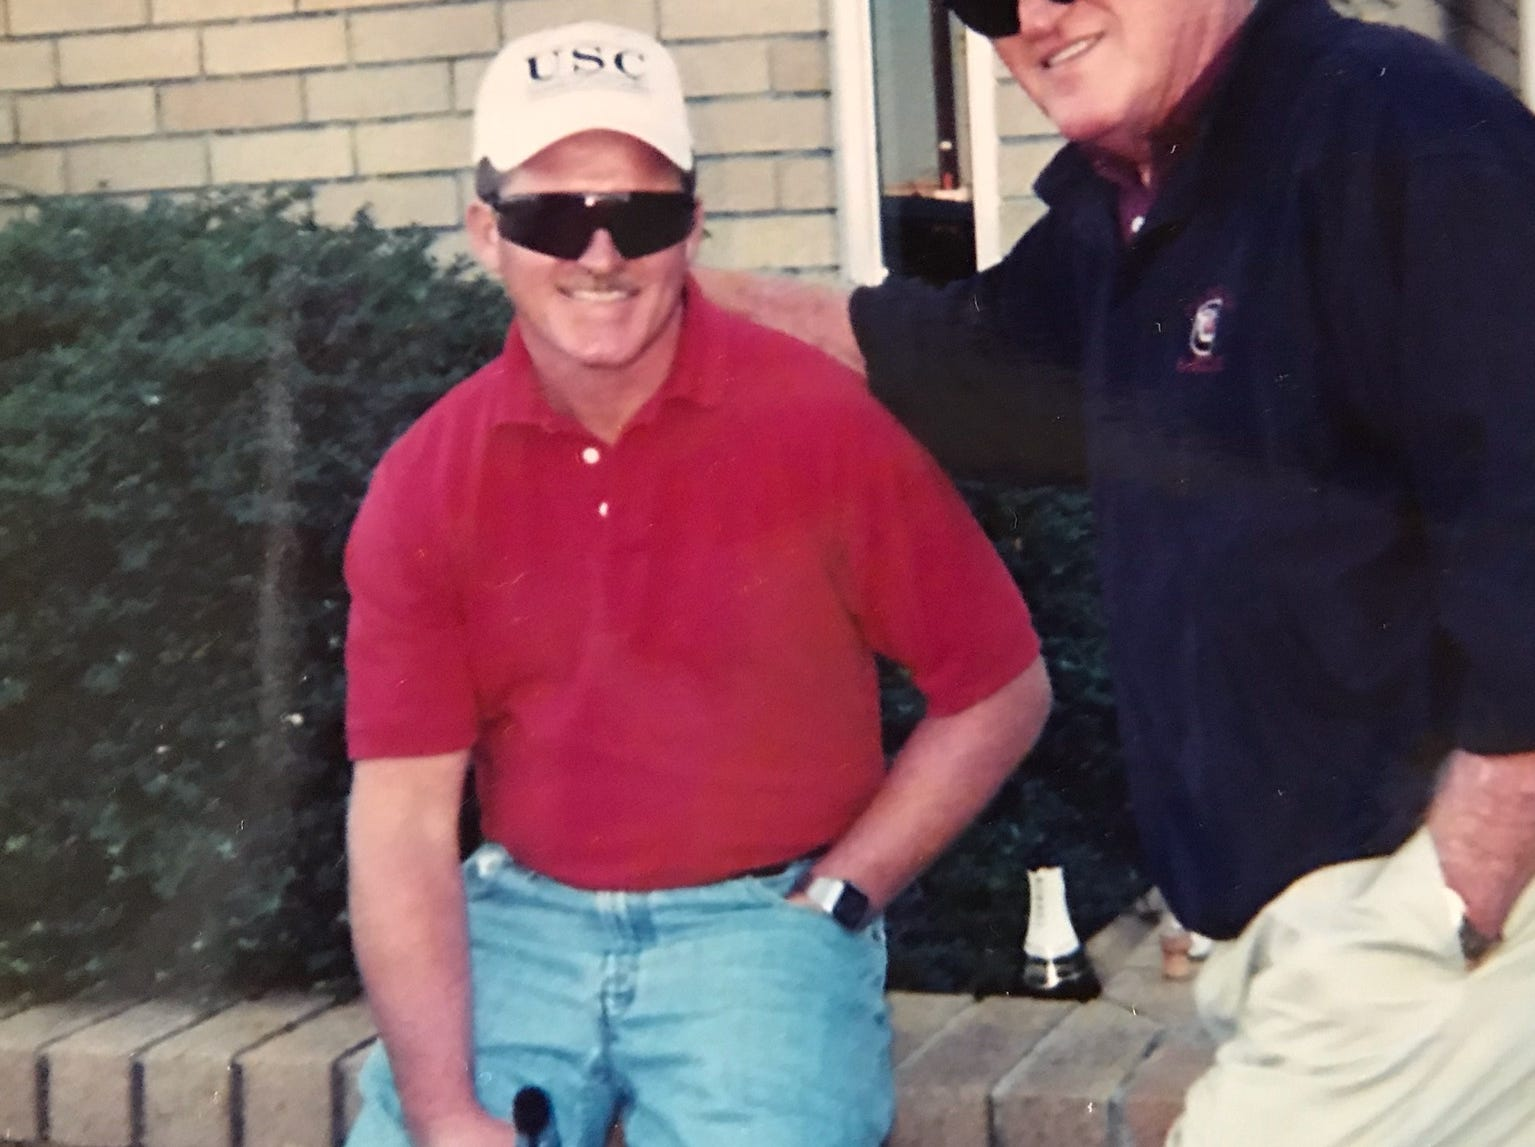 Dale Martin and his son Vic Martin pose for a picture with their University of South Carolina caps.